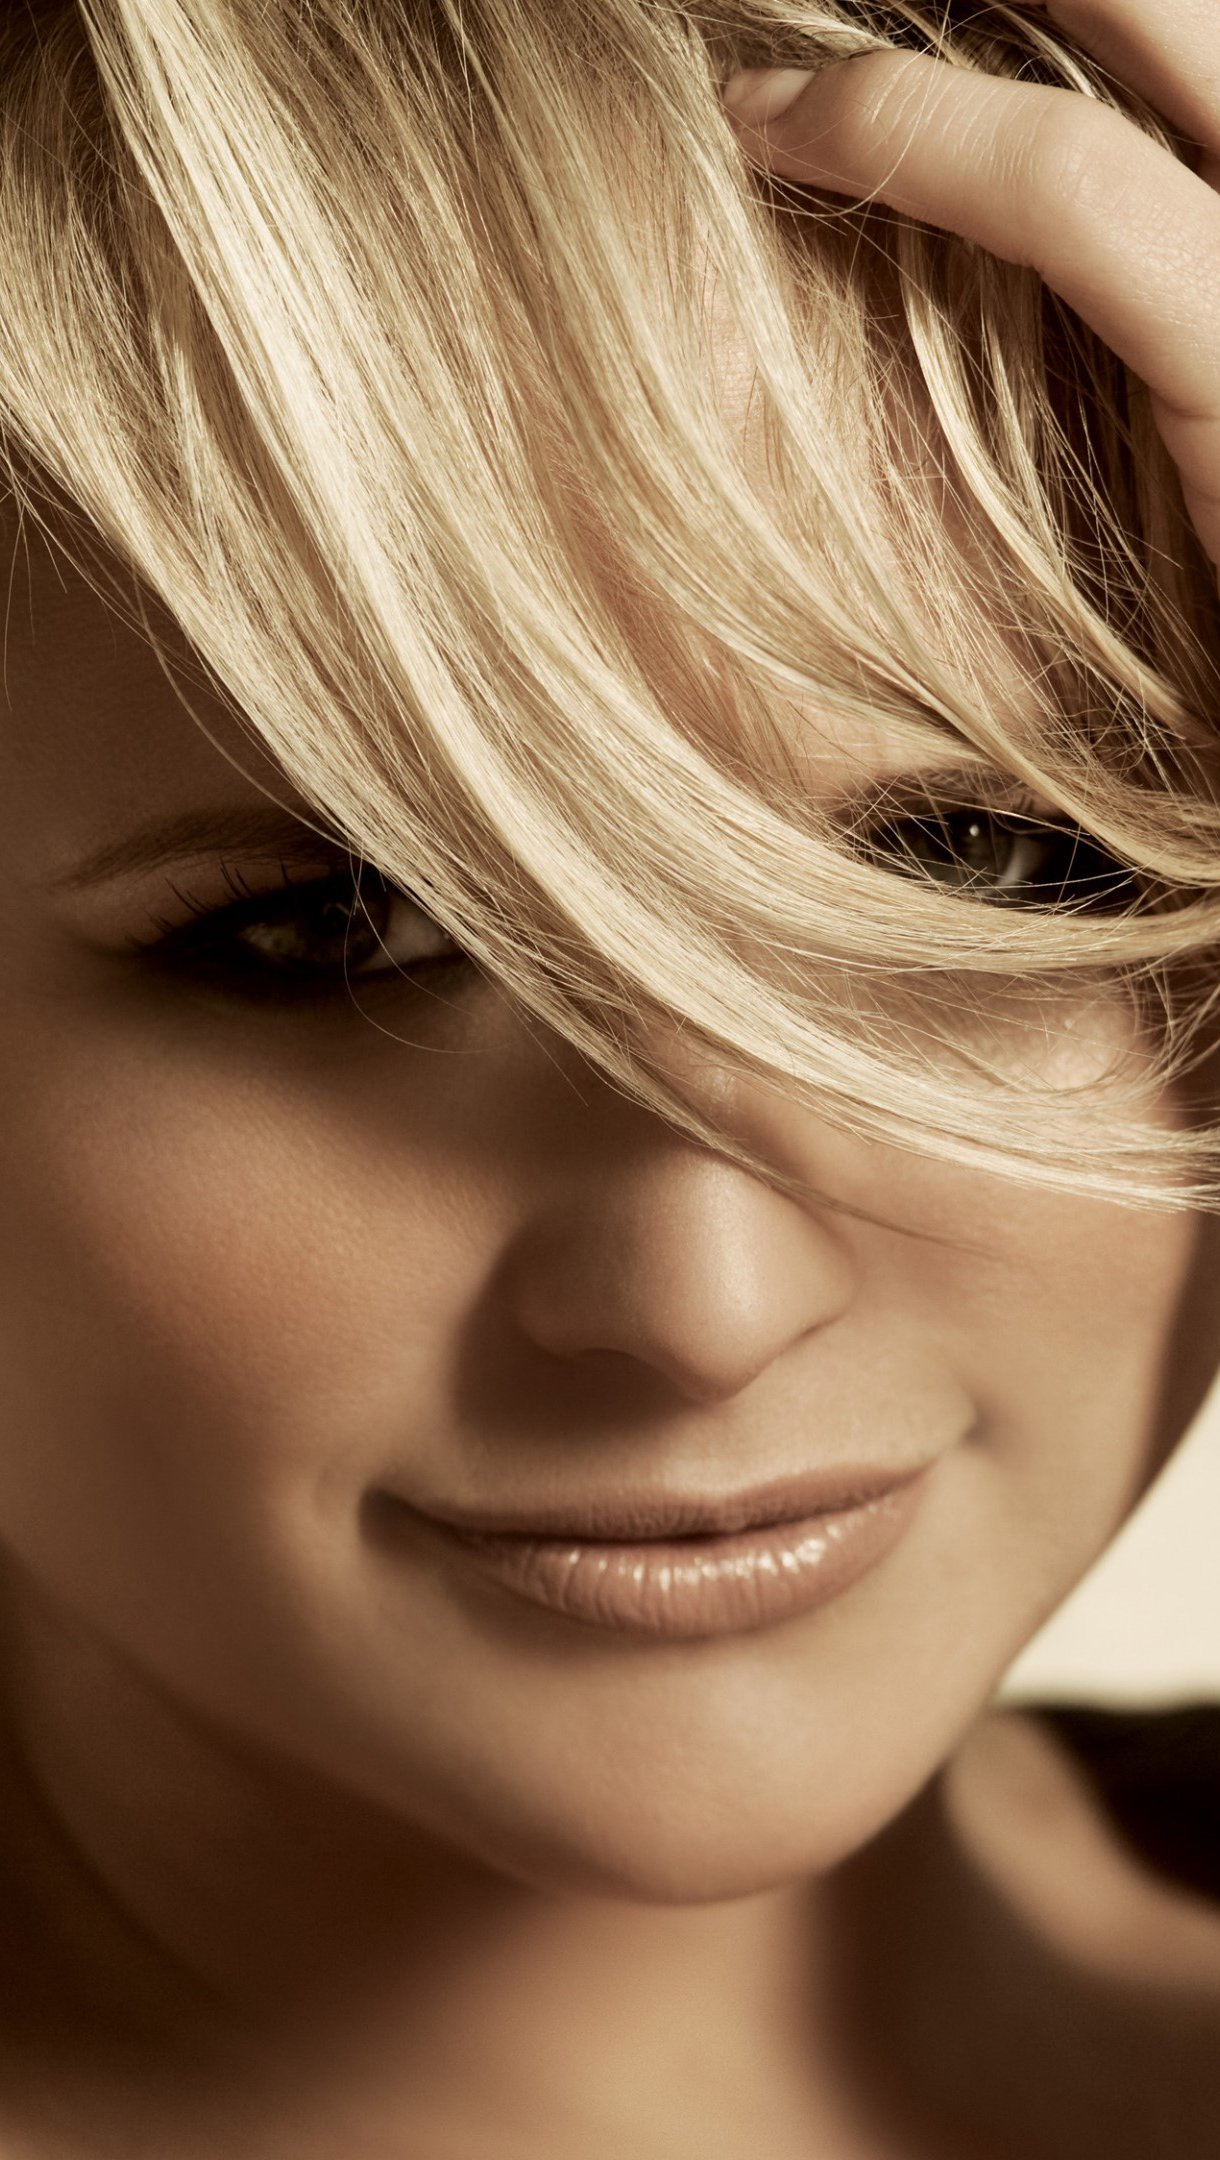 Wallpaper Miranda Lambert with short hair Vertical